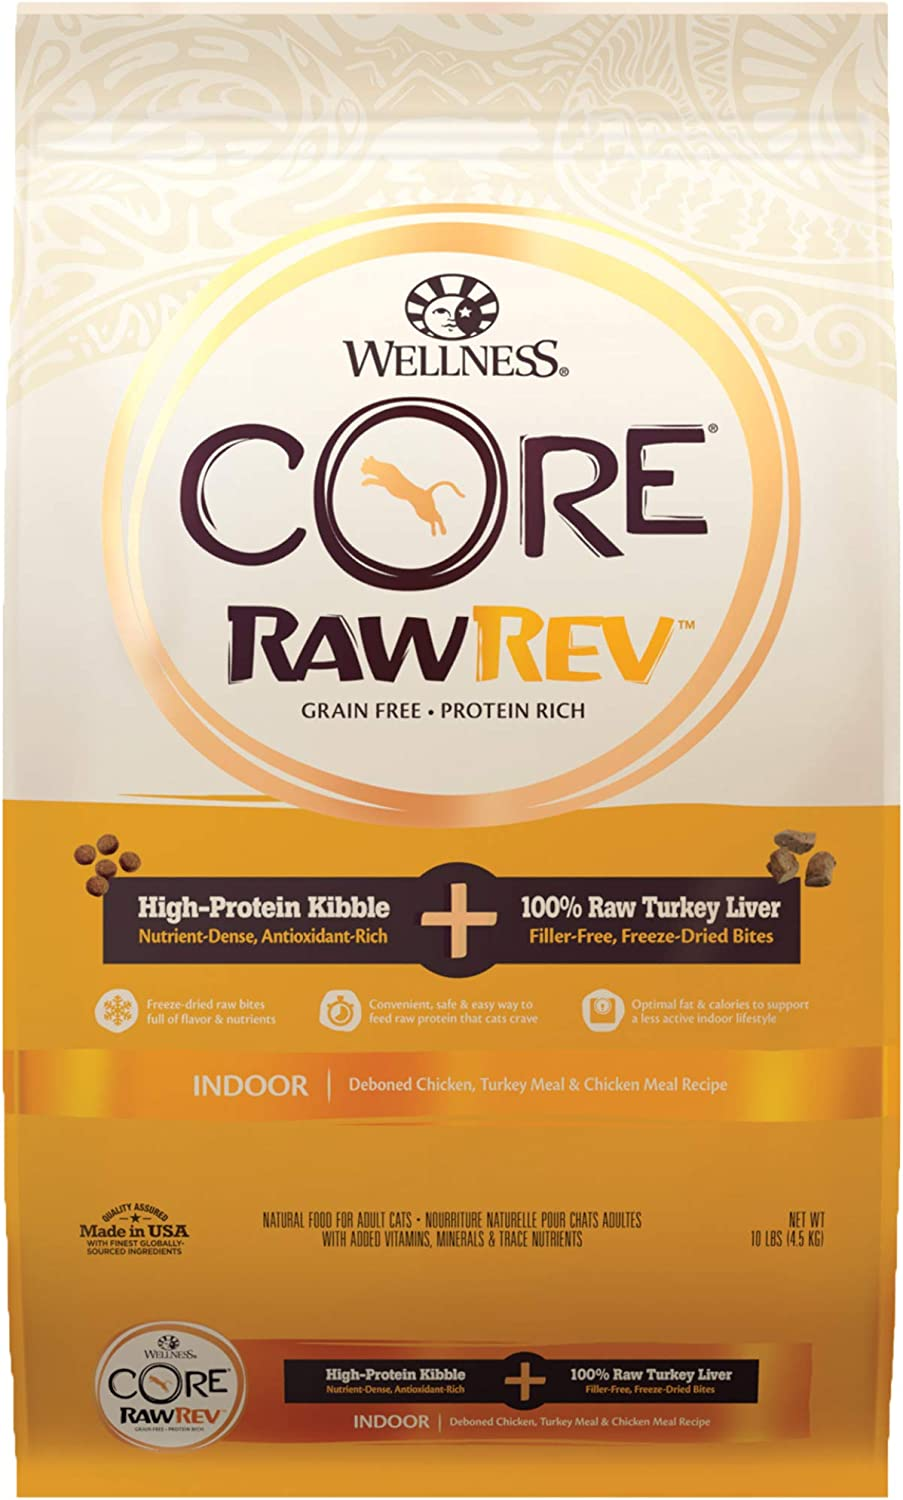 Wellness CORE RawRev Turkey Liver Dry Cat Food